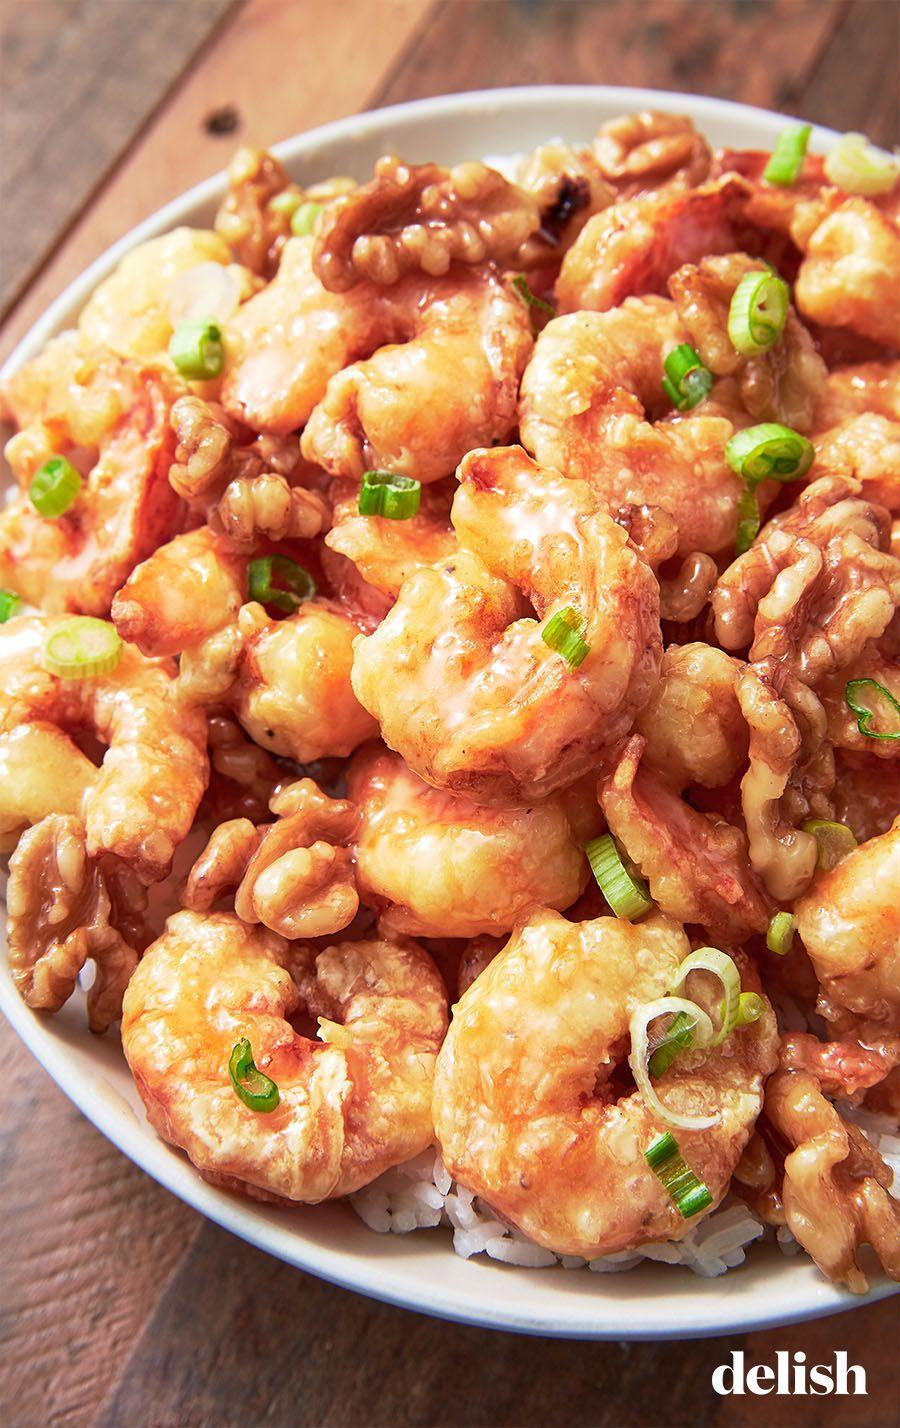 """<p>No need for take-out tonight!</p><p>Get the recipe from <a href=""""https://www.delish.com/cooking/recipe-ideas/a25861120/honey-walnut-shrimp-recipe/"""" rel=""""nofollow noopener"""" target=""""_blank"""" data-ylk=""""slk:Delish"""" class=""""link rapid-noclick-resp"""">Delish</a>. </p>"""